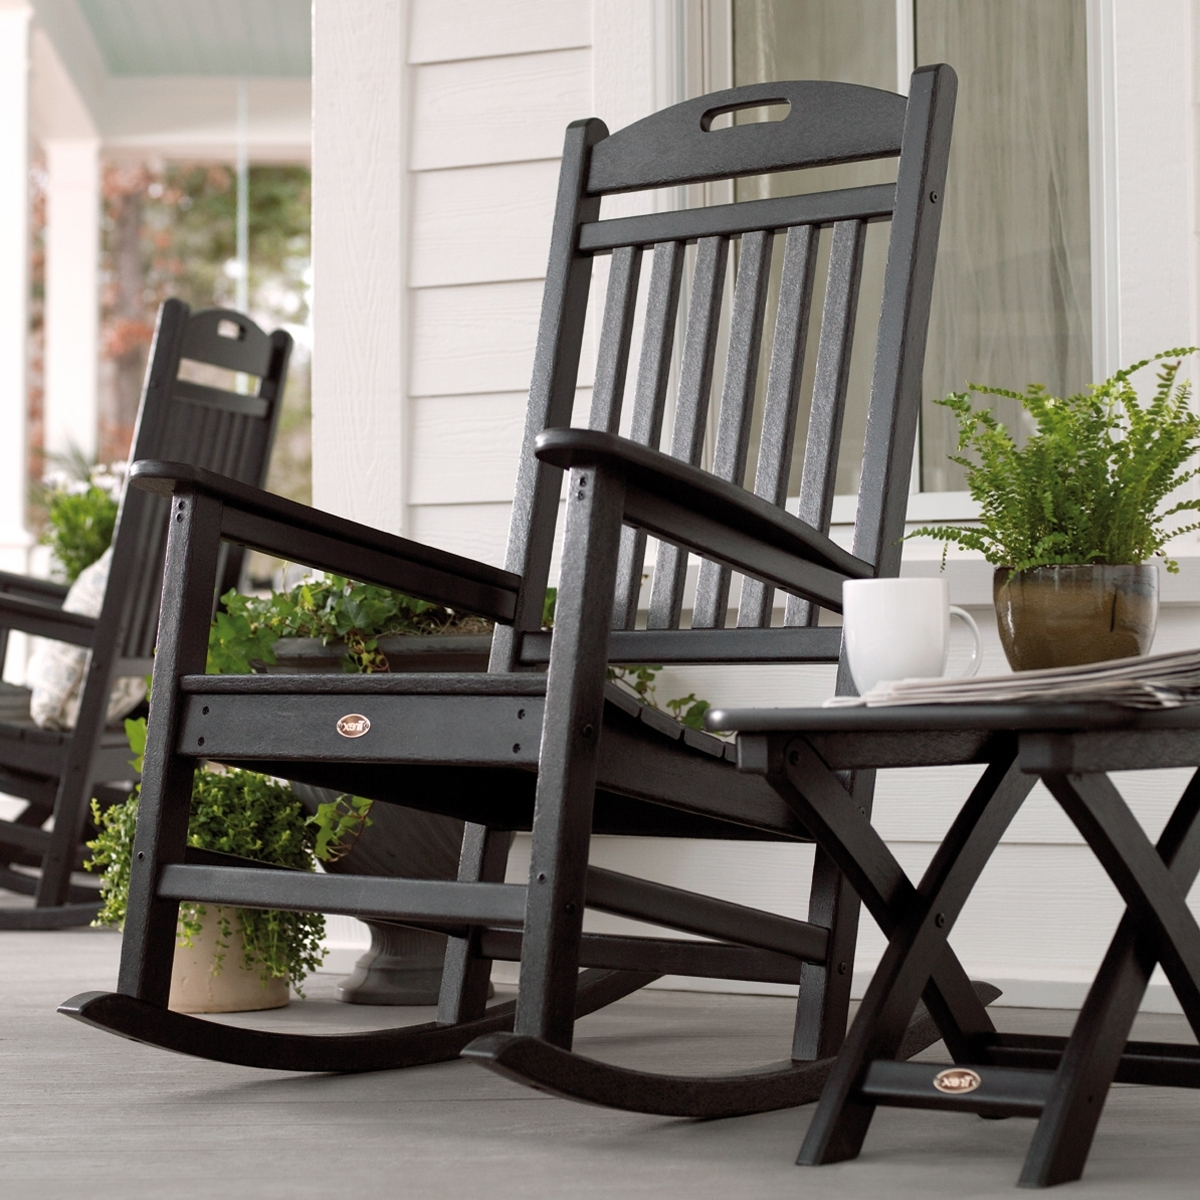 Unique Outdoor Rocking Chairs Throughout Well Known Trex Outdoor Furniture Txr100 Yacht Club Outdoor Rocking Chair (View 7 of 15)